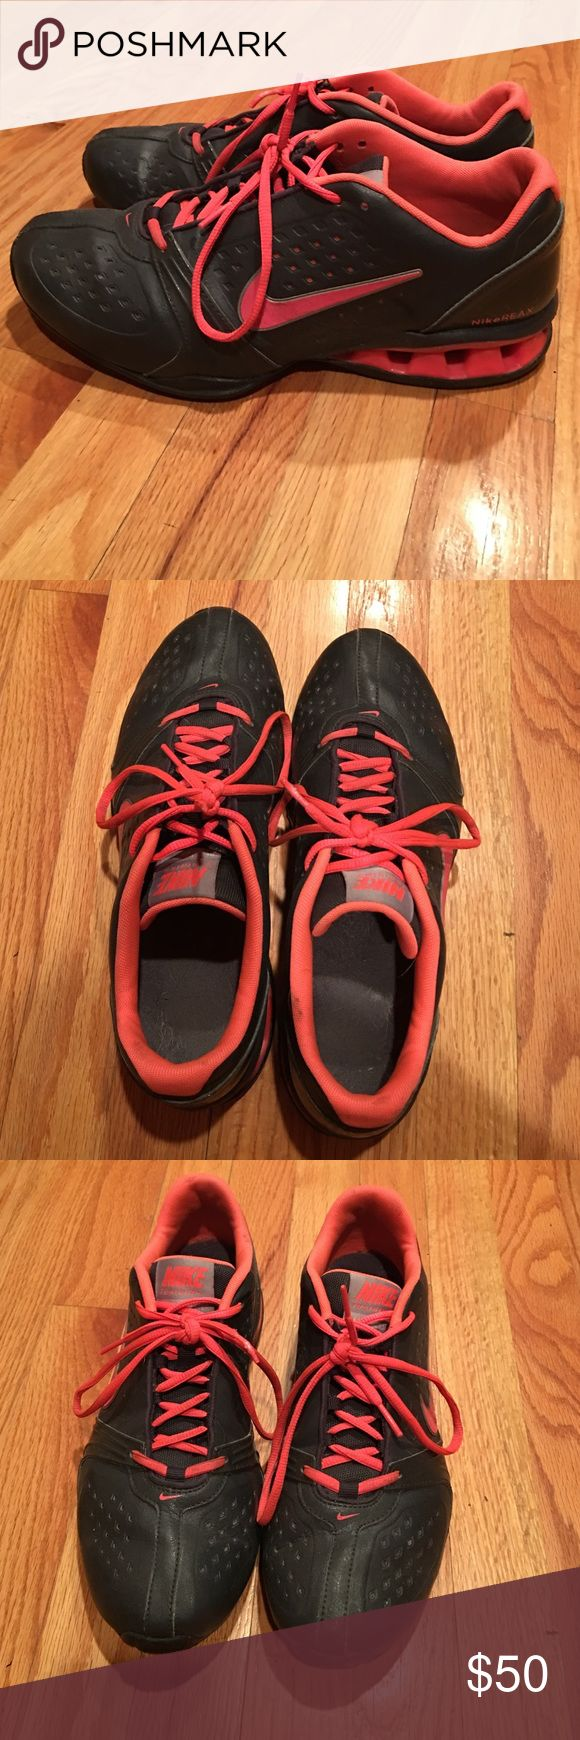 Nike Training Reax Rockstar Women's size 11 Nike Training Reax Rockstar sneakers. Worn a handful of times but no damage. A small amount of dirt but should wash right out. These have great support, only selling because I got a new pair for Christmas. Nike Shoes Sneakers